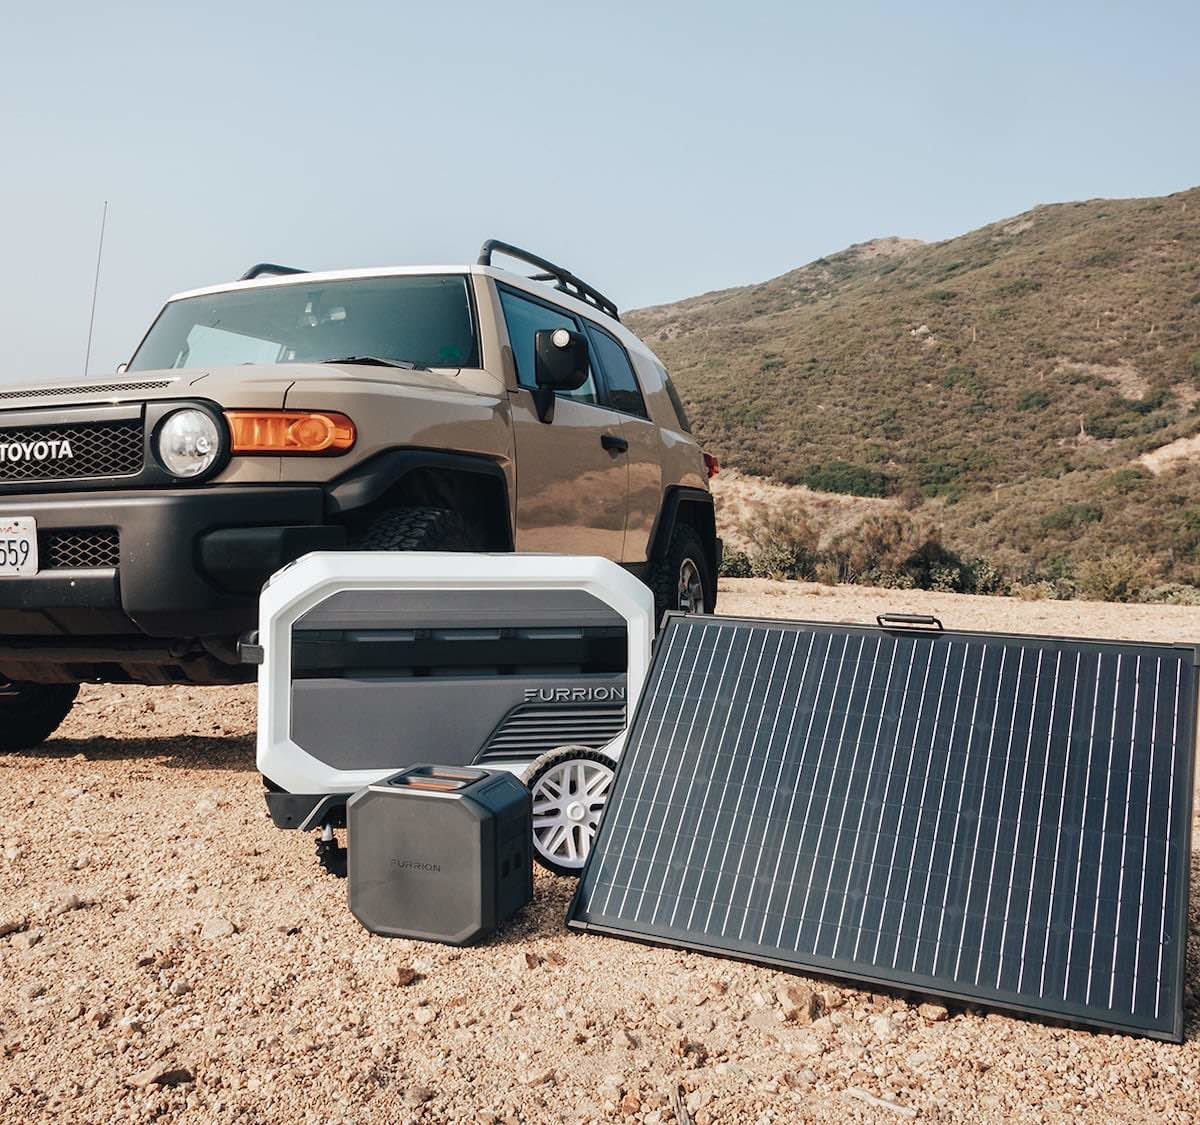 Furrion eRove battery-powered cooler provides incredible off-grid cooling